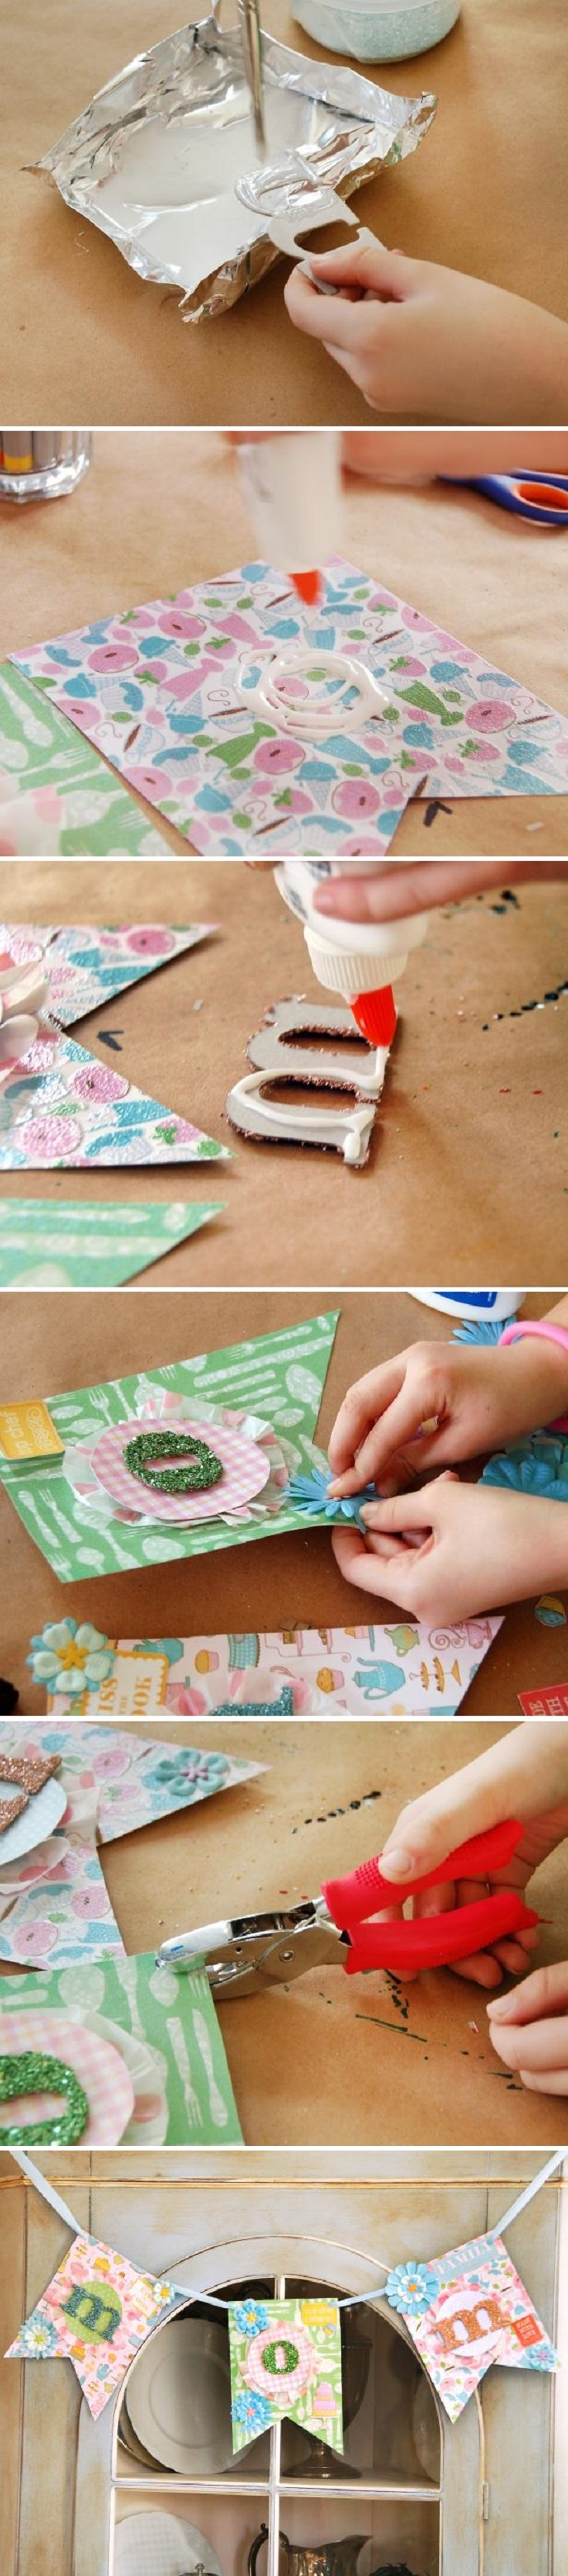 Top 10 creative kid crafts for mother 39 s day top inspired for Crafts to make for your mom